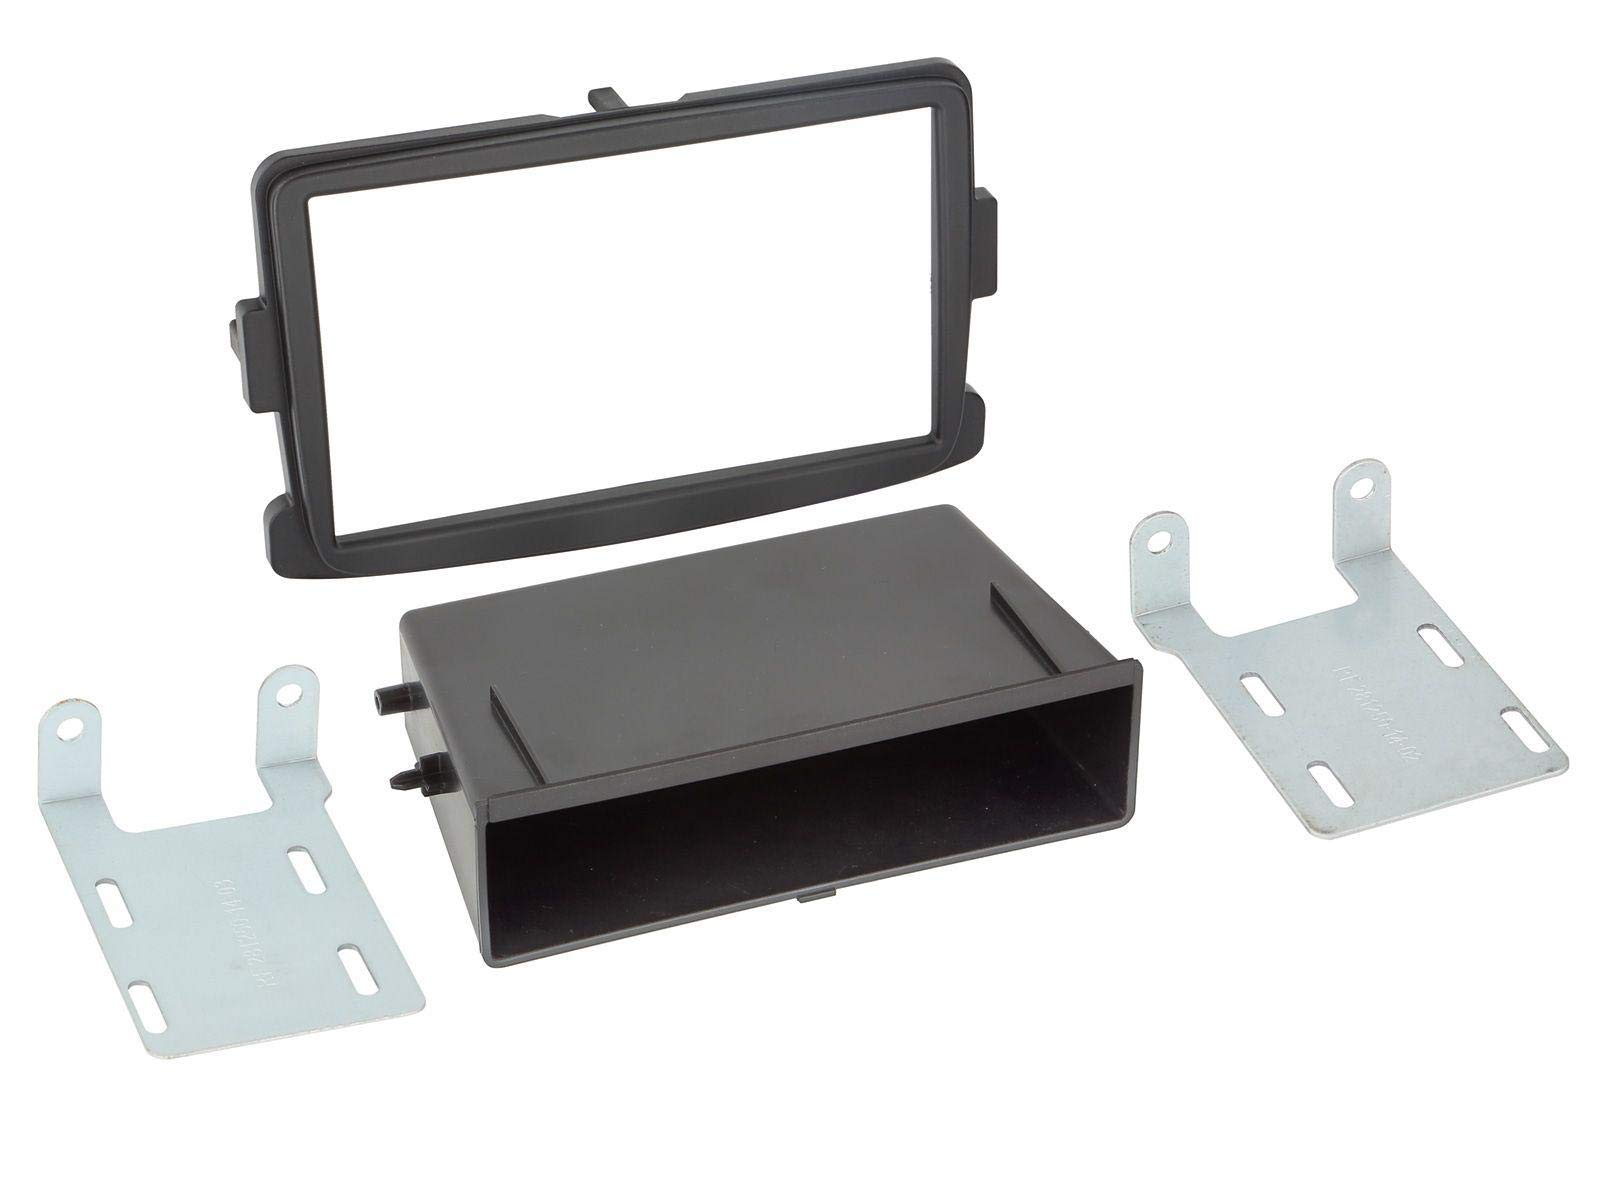 T31 ACV 42///_ 5/Ni Steering Wheel Remote Control Adaptor LFB Nissan X-Trail 2009/ /2014/Without Sound System Panasonic